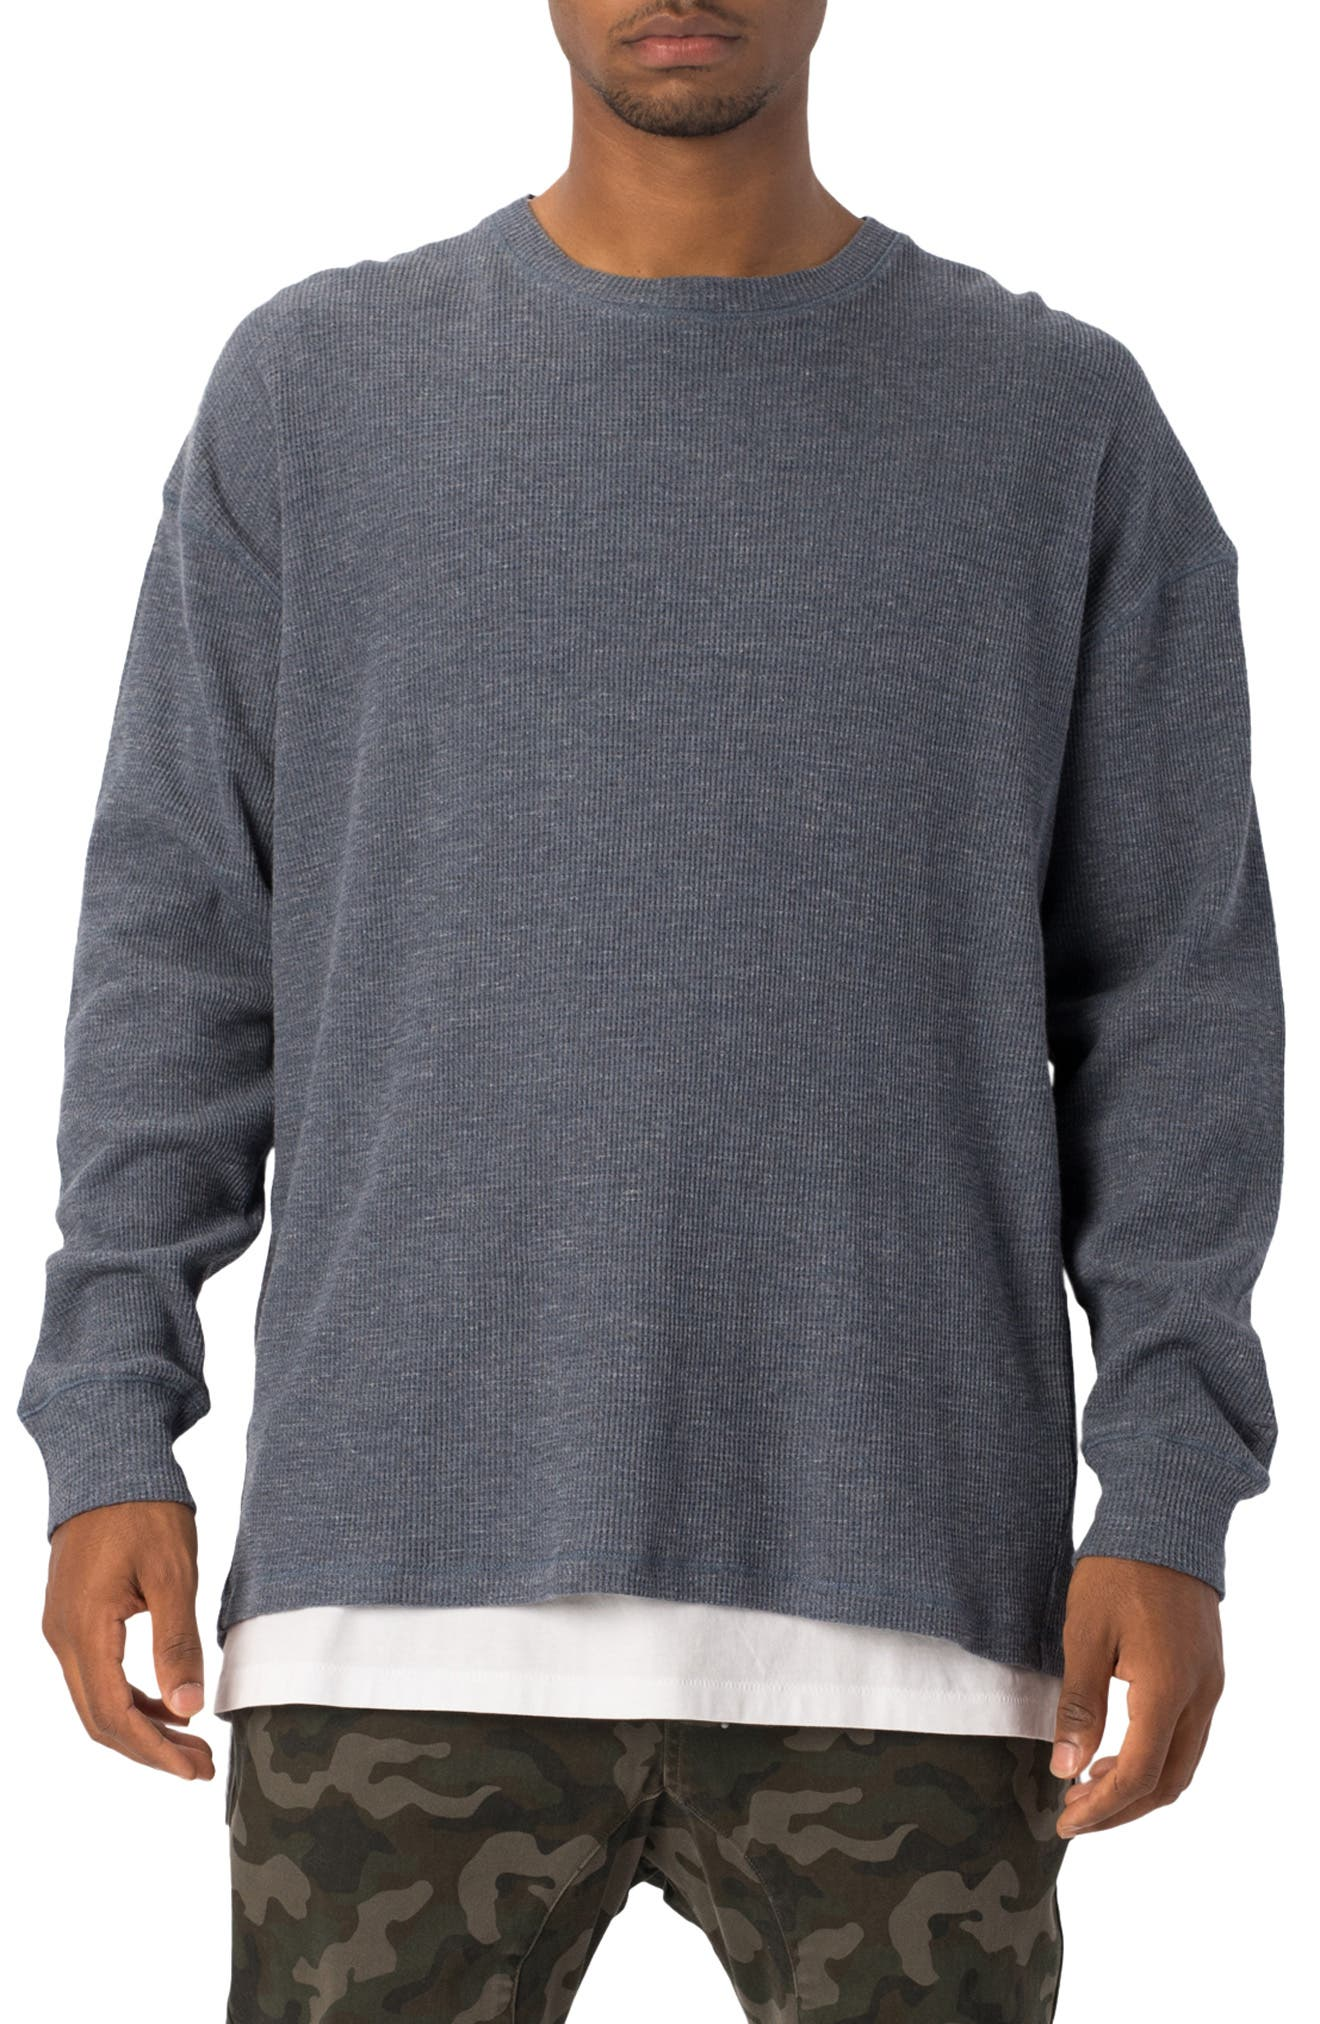 Rugger Waffle Knit Long Sleeve T-Shirt,                             Main thumbnail 1, color,                             DENIM MARLE